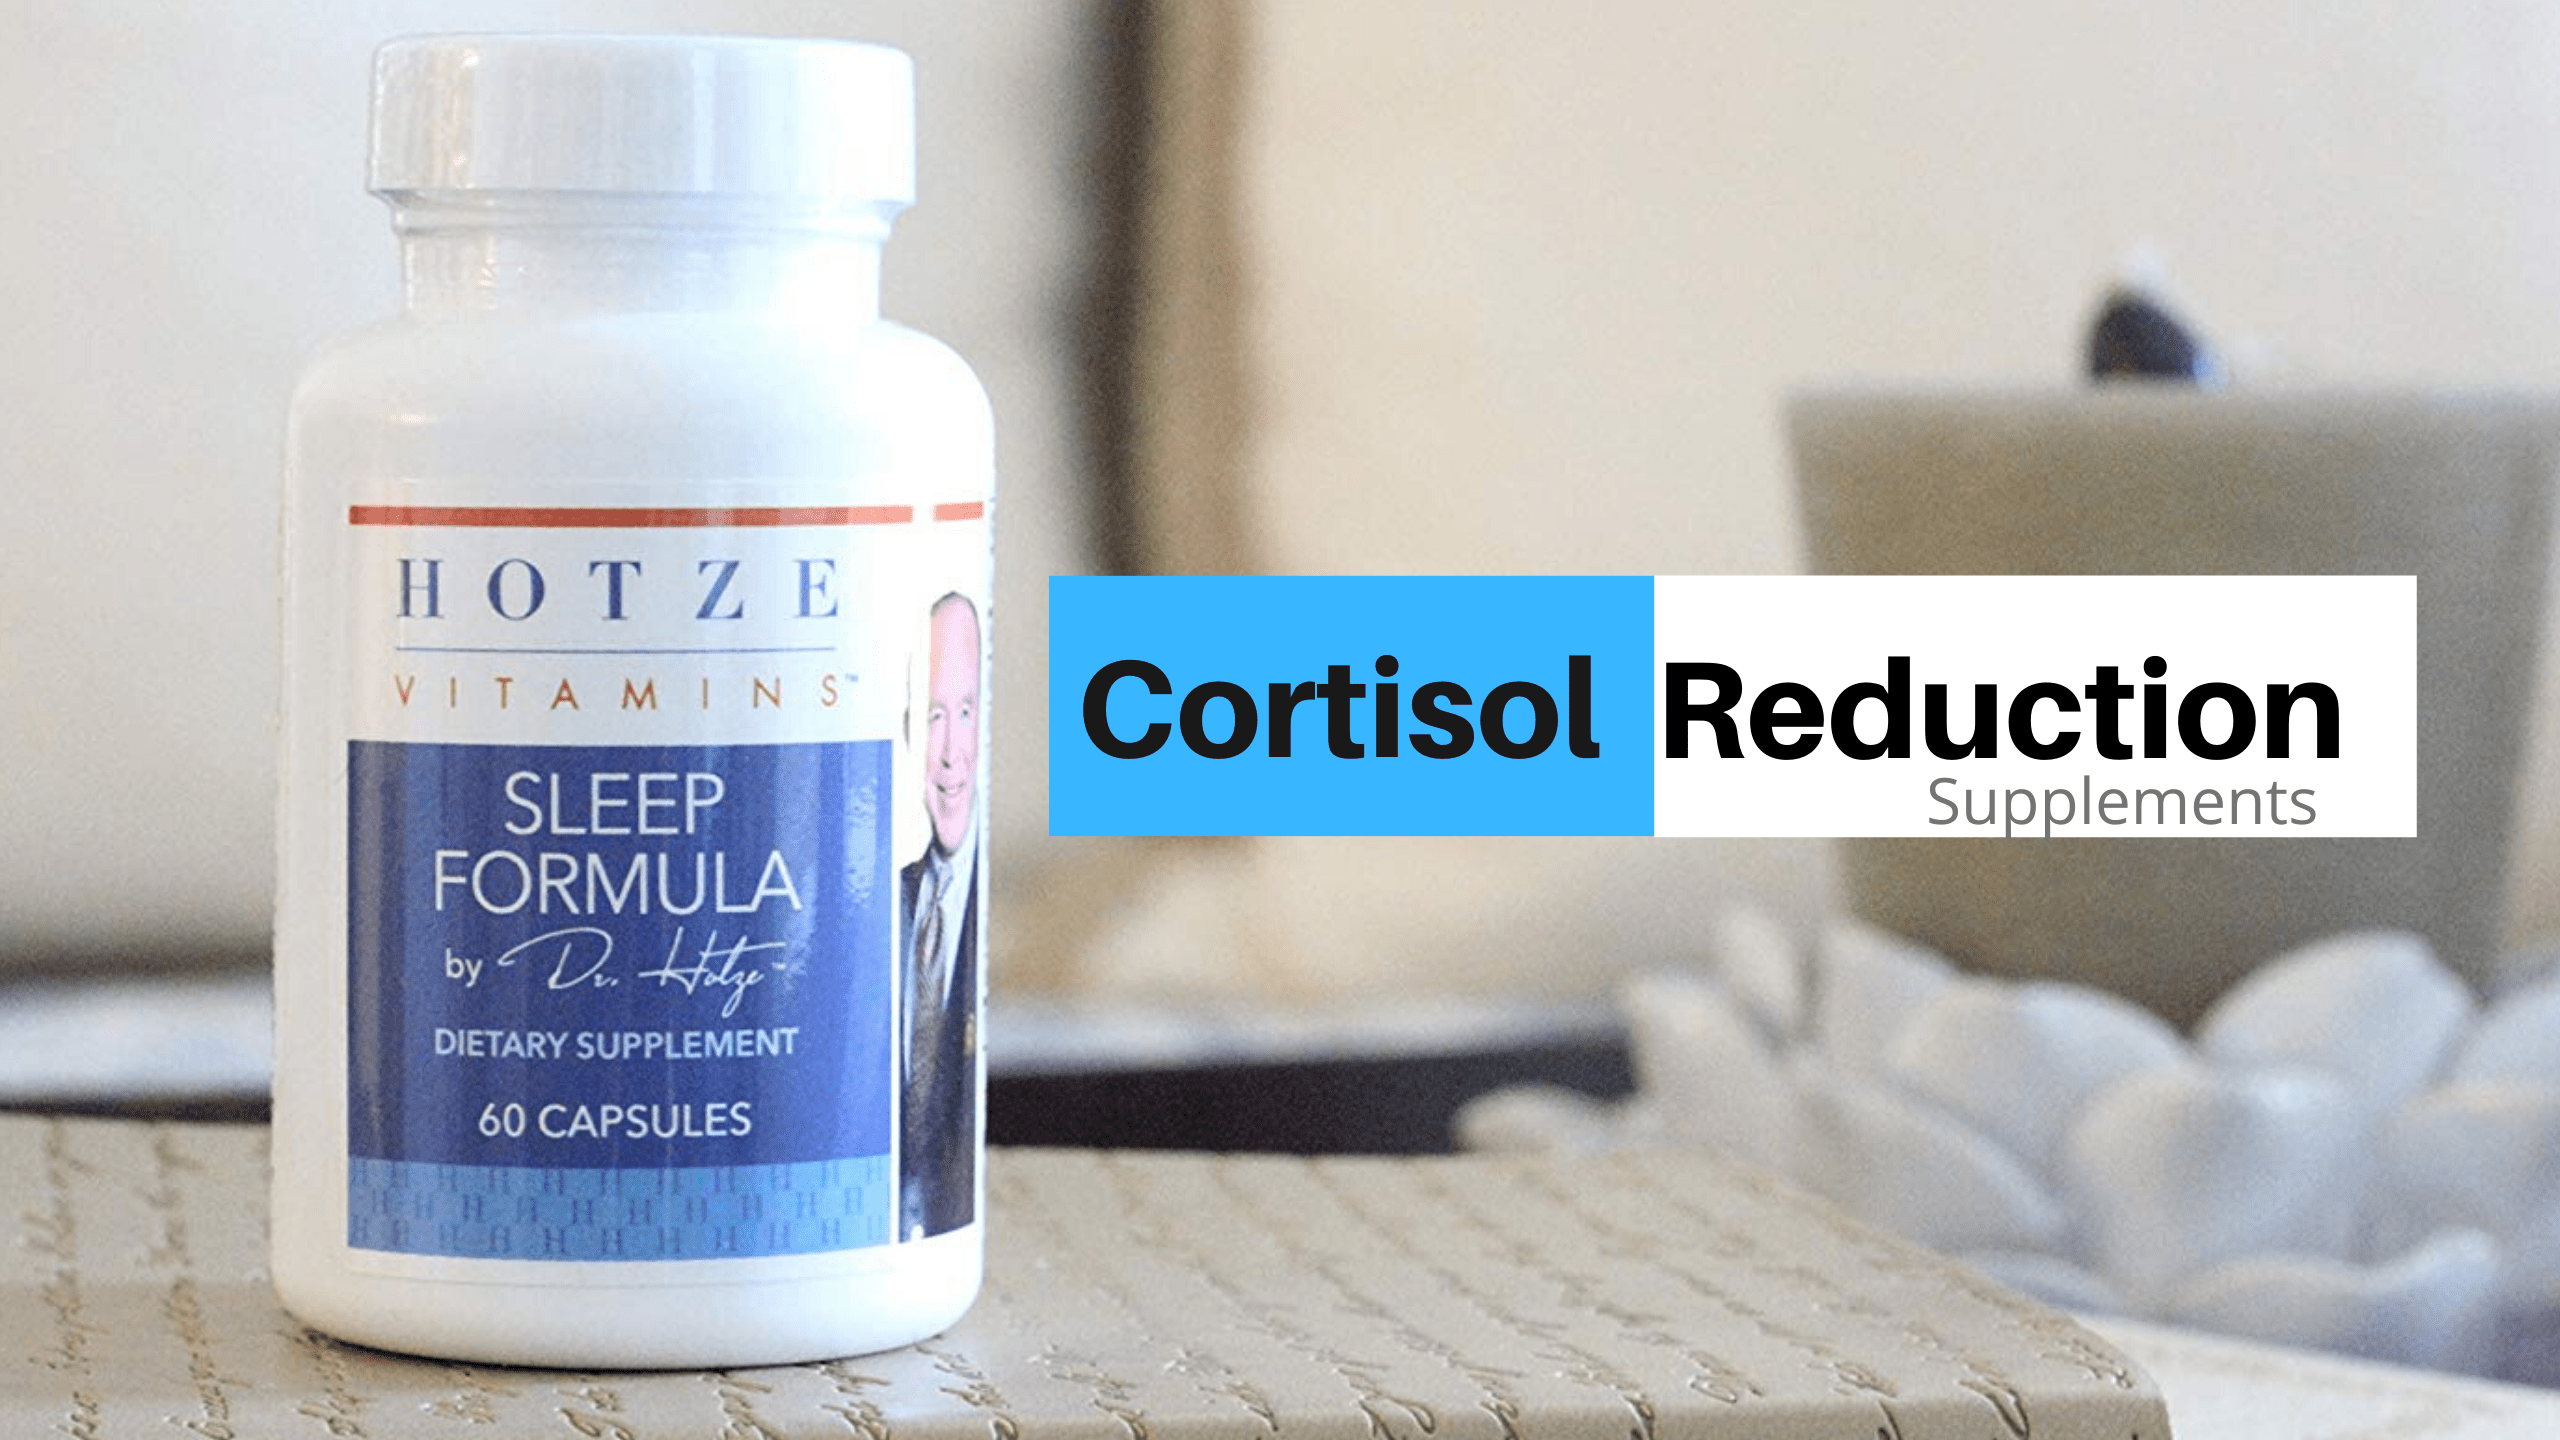 cortisol reduction supplements